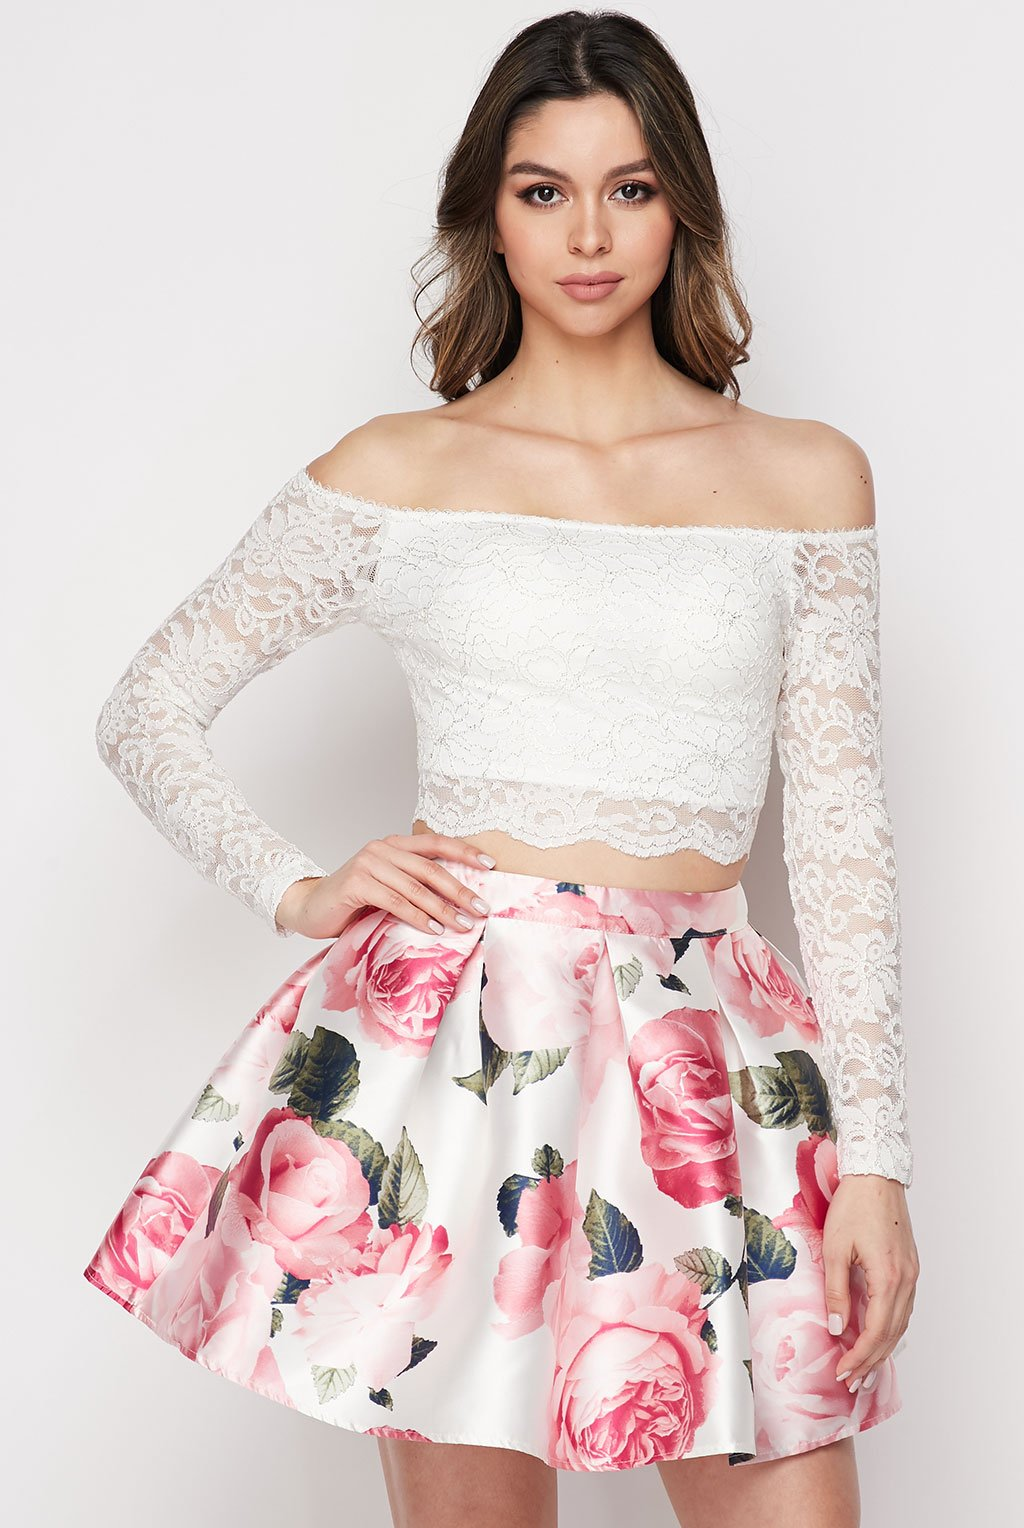 Teeze Me | Two-Piece Lace and Floral Dress | White/Blush | Teeze Me Juniors Apparel